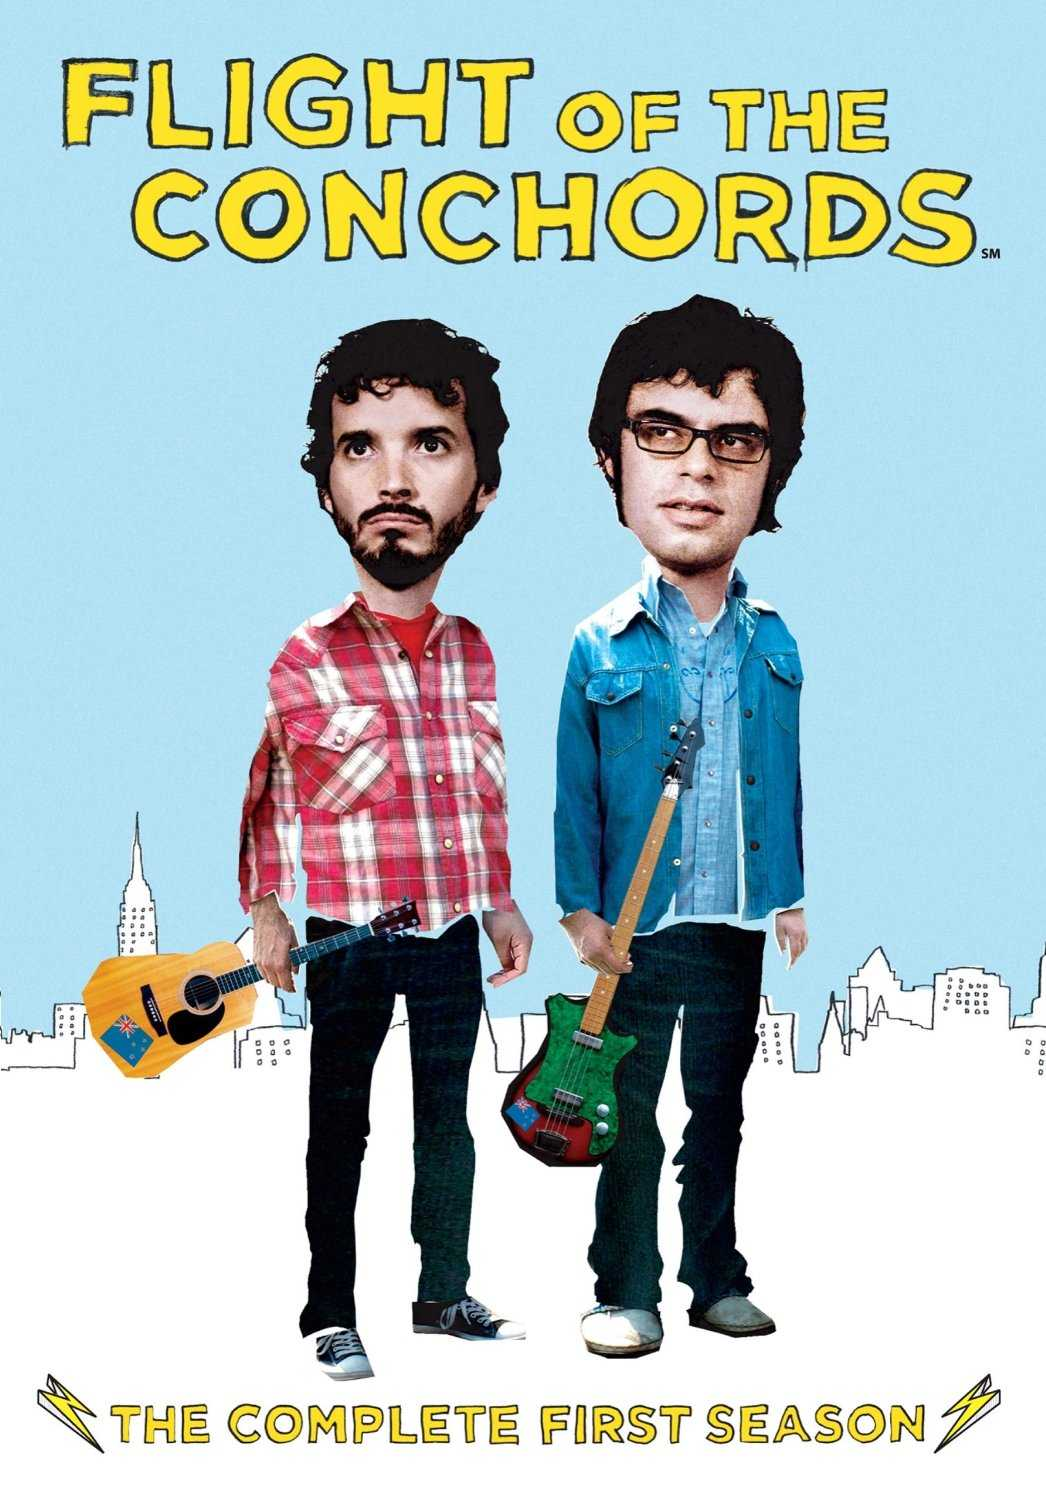 It's Business Time: Flight Of The Conchords Movie In The Works | Conchords